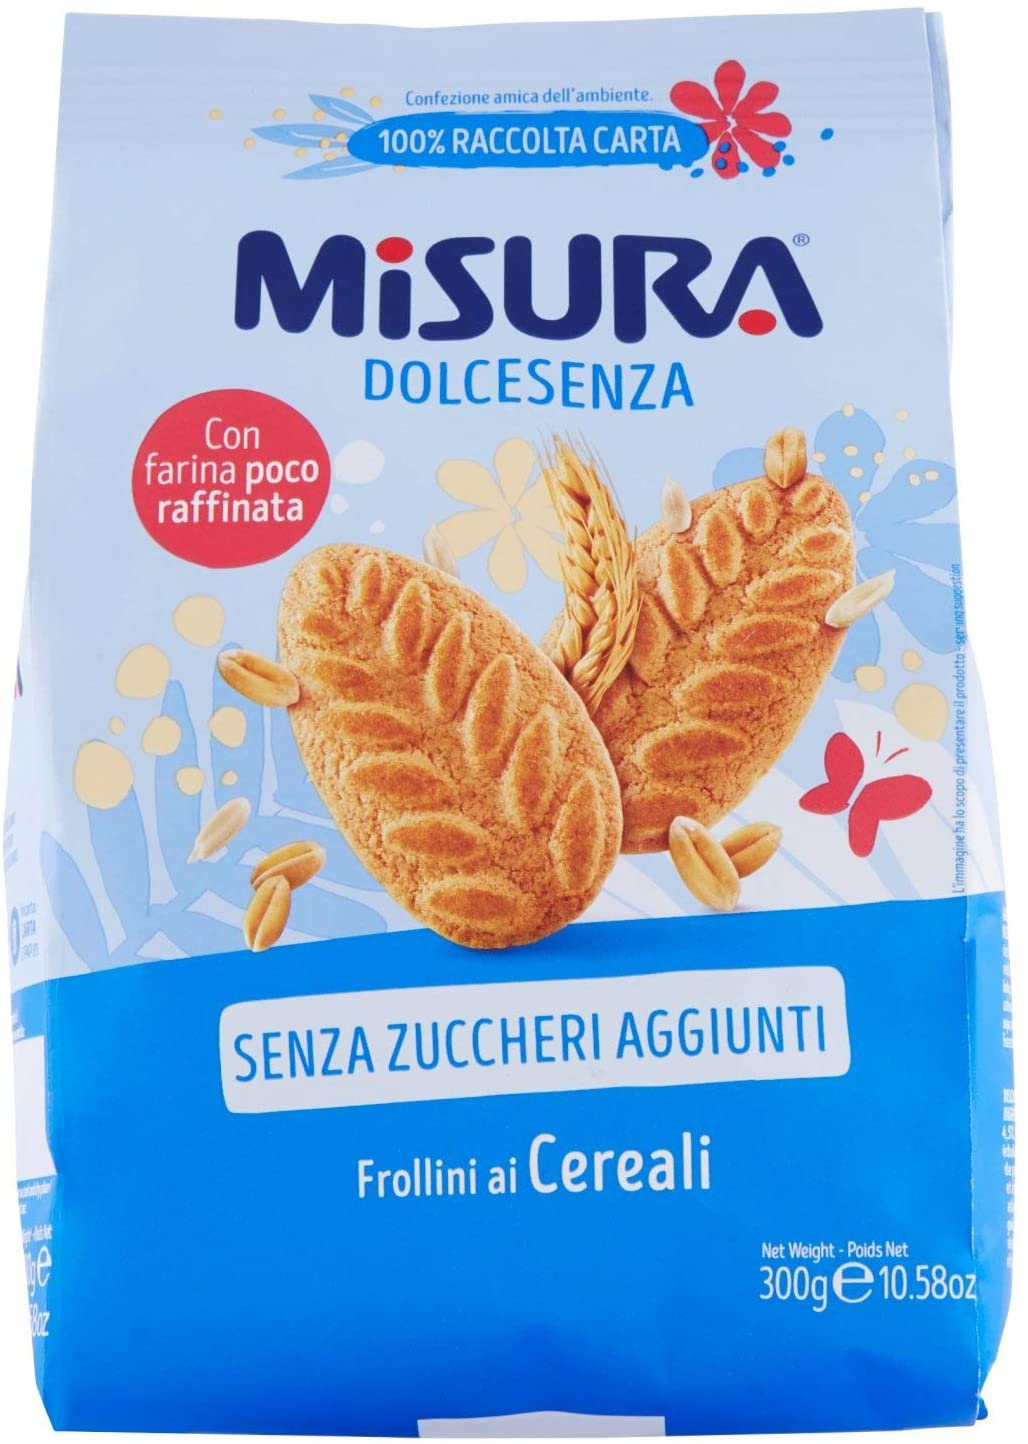 Misura Dolcesenza wholemeal biscuits *Collection only item*